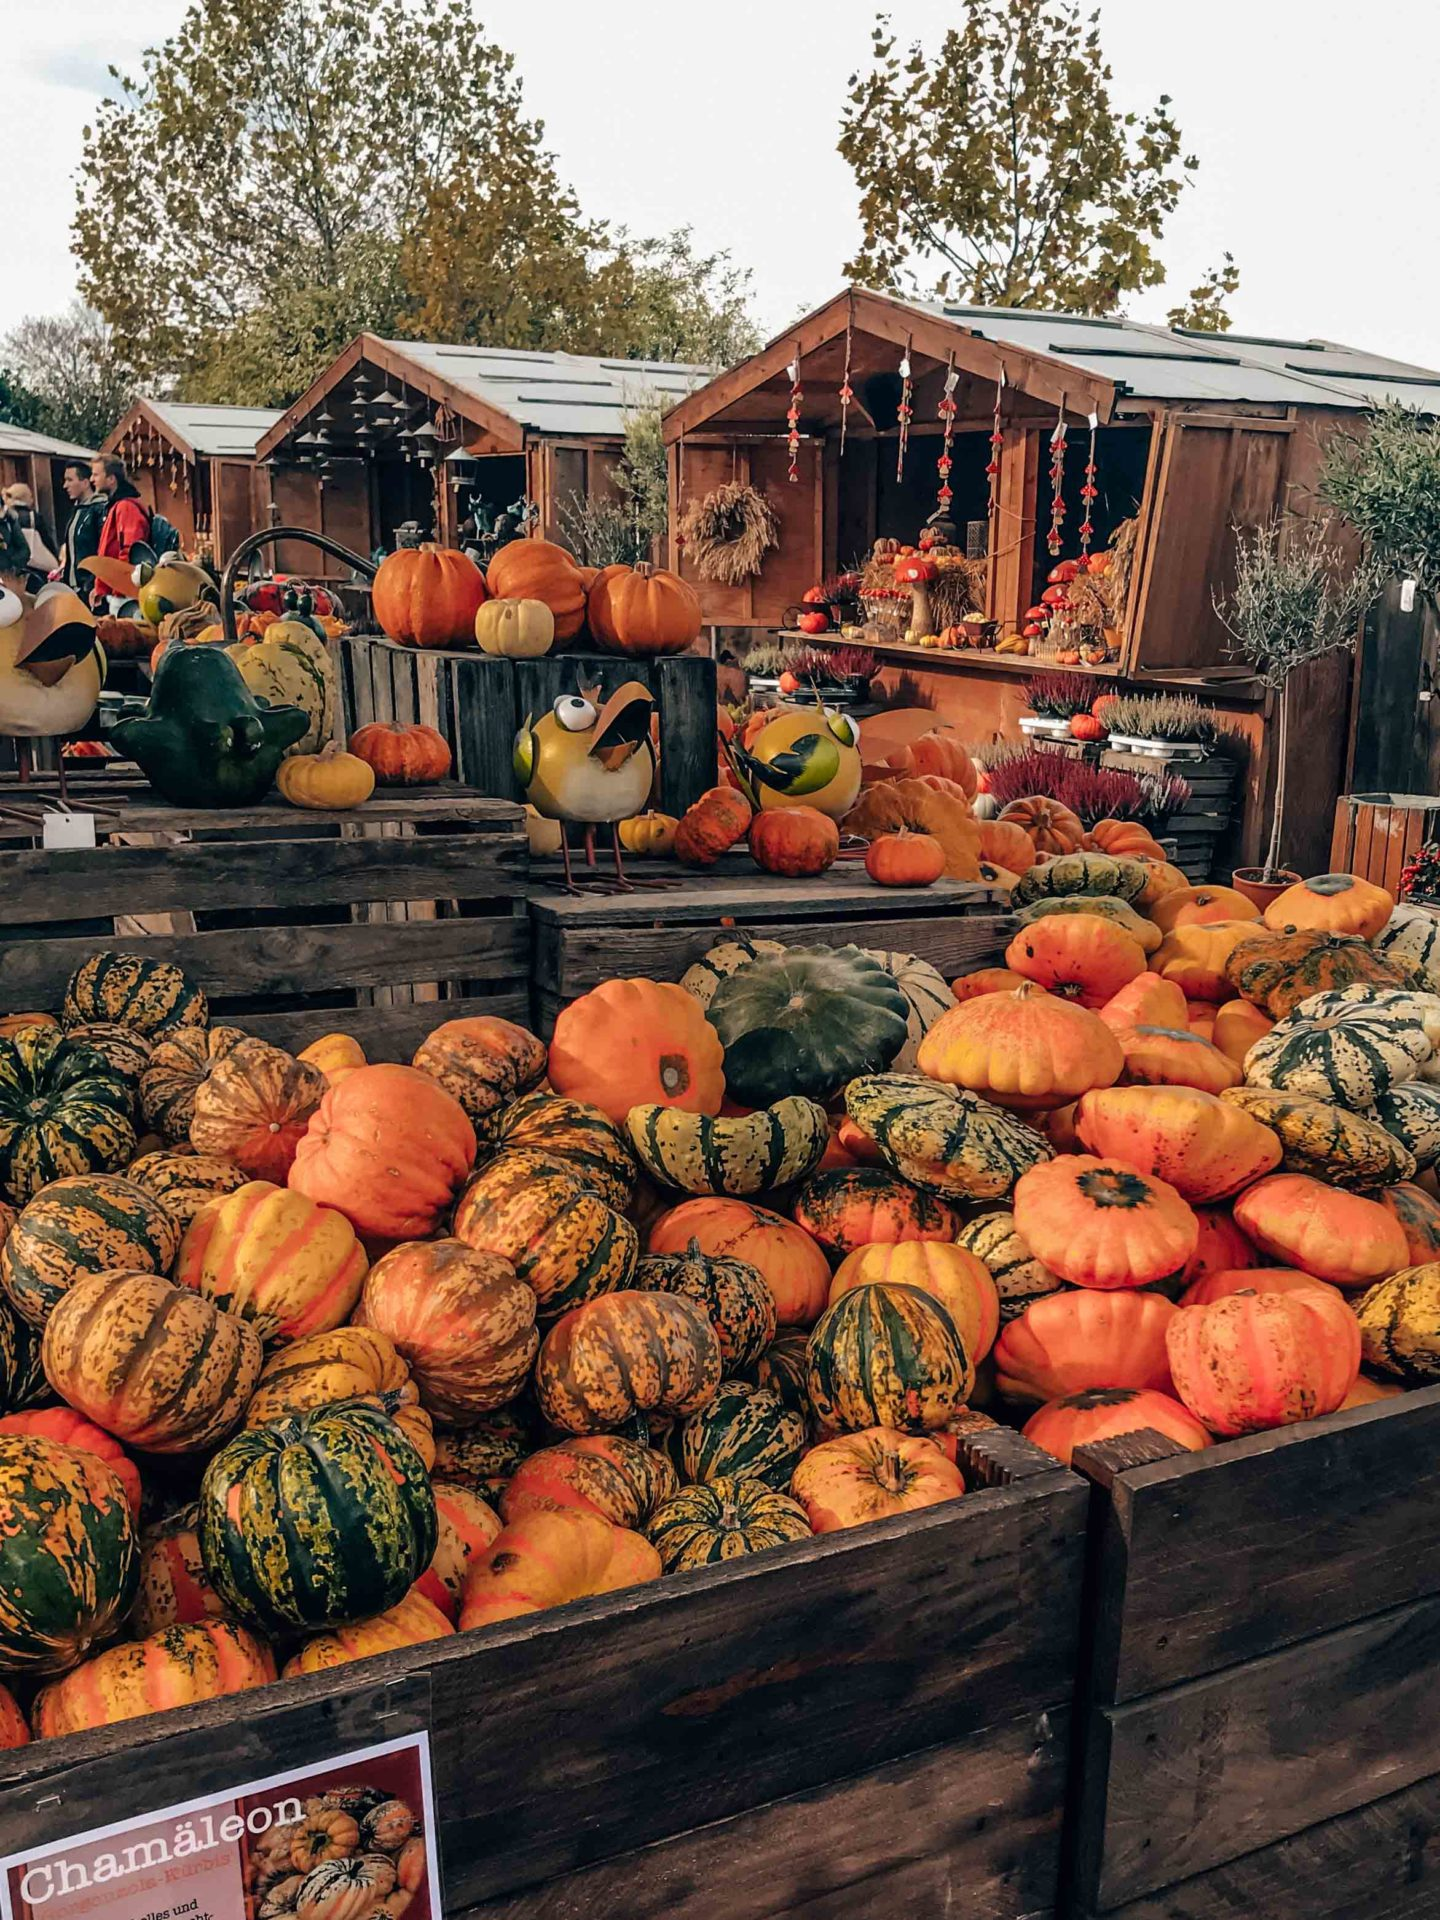 Shopping pumpkins in Gertrudenhof, Germany